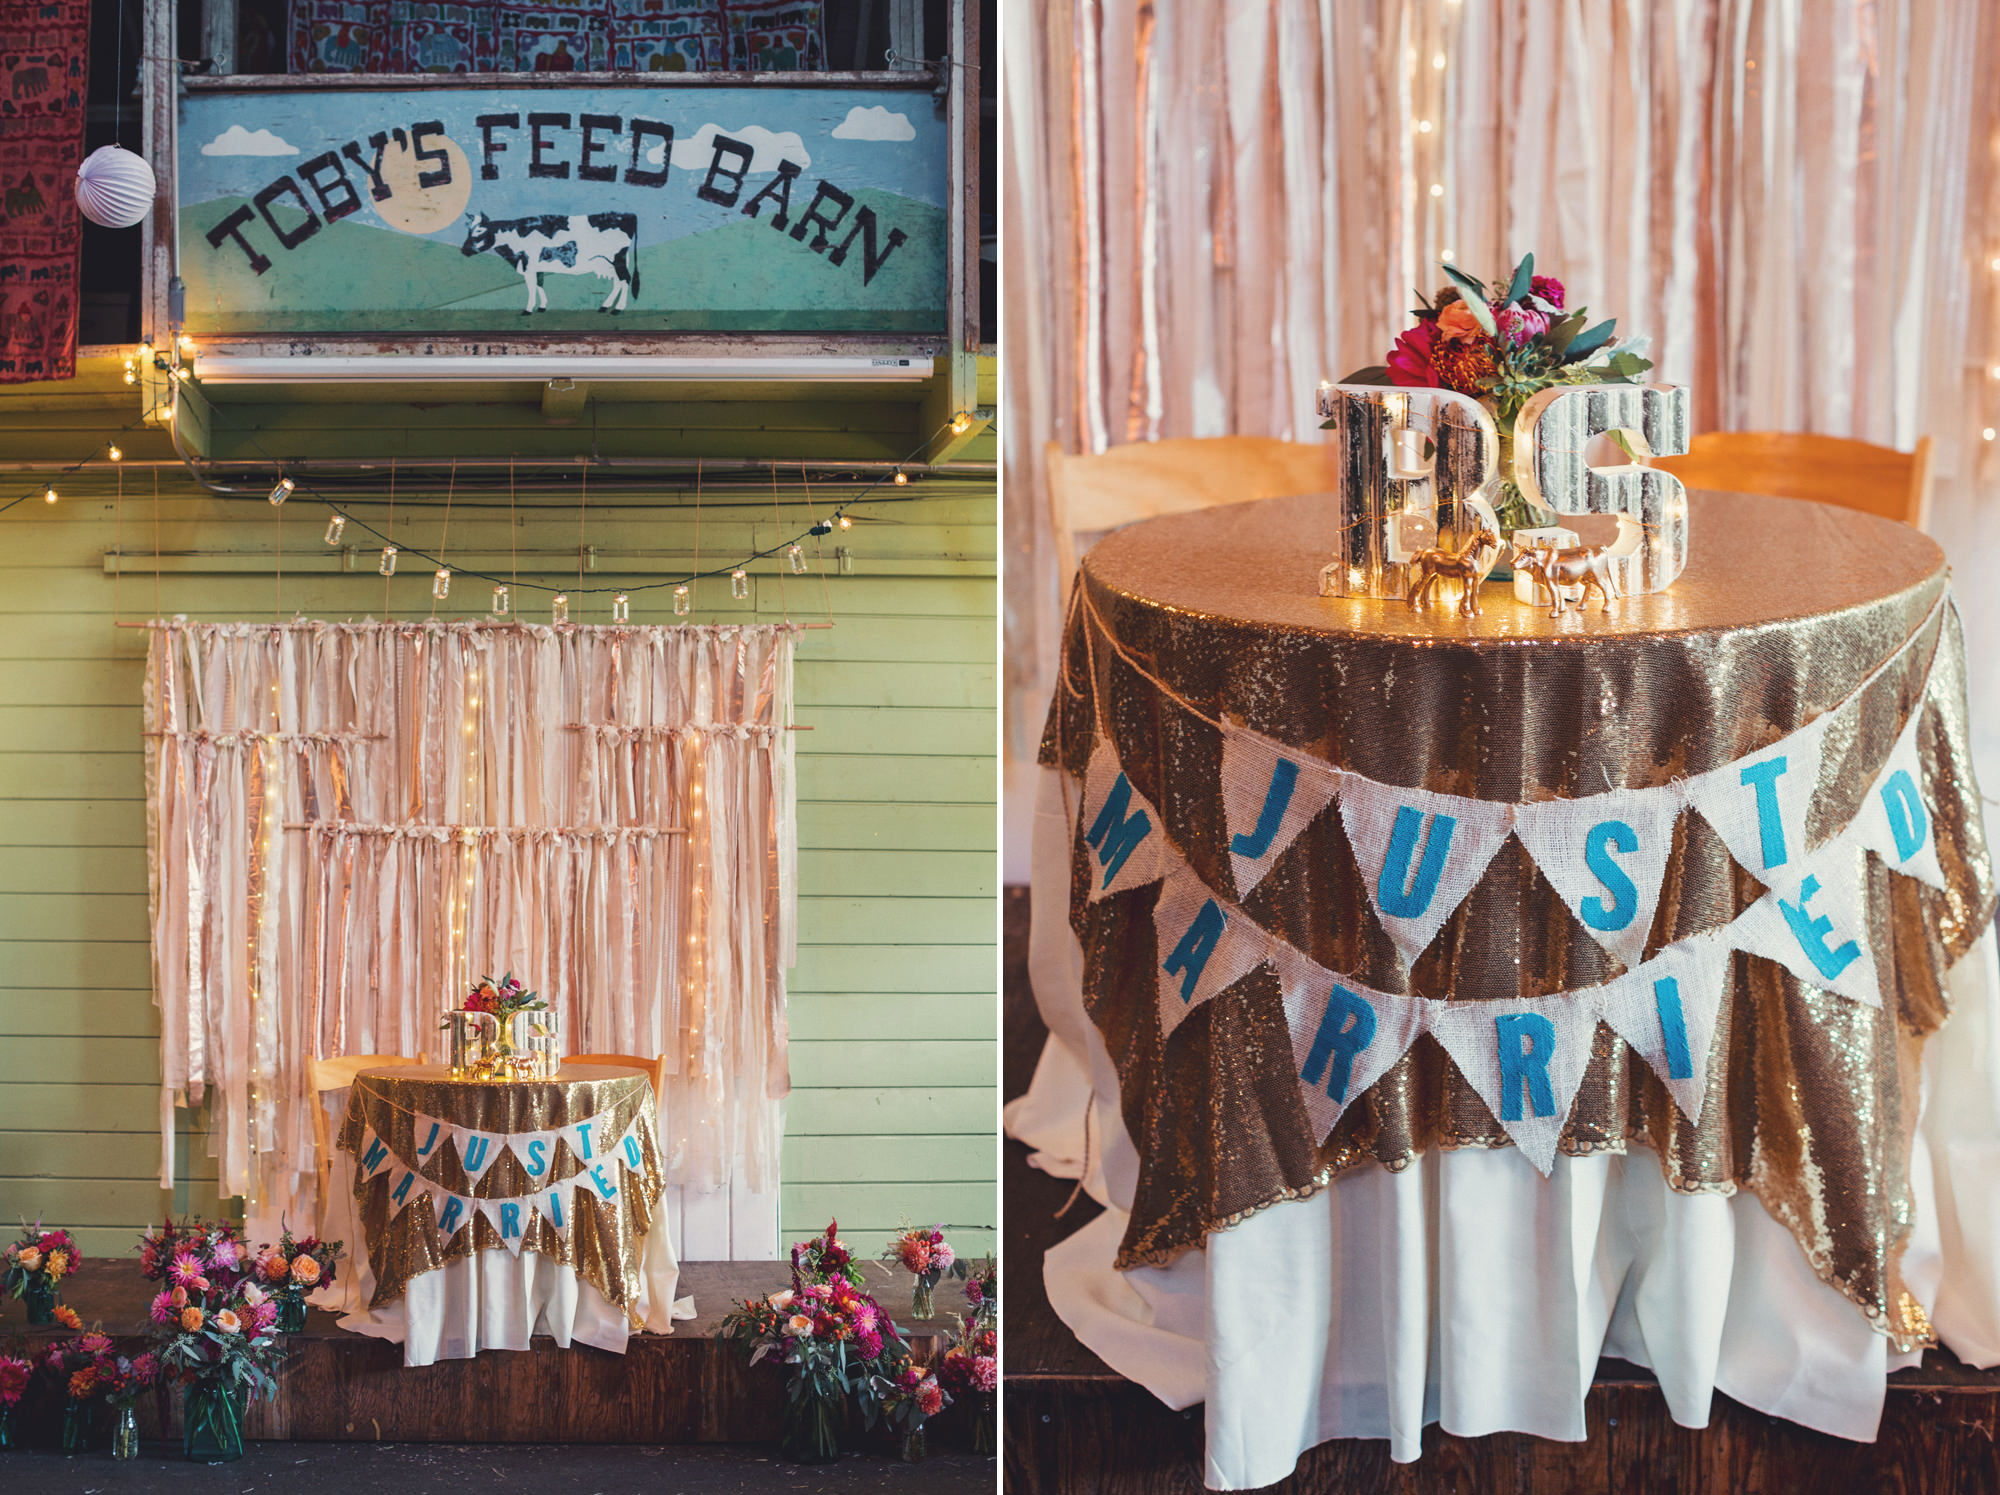 Toby's Feed Barn Wedding ©Anne-Claire Brun 121